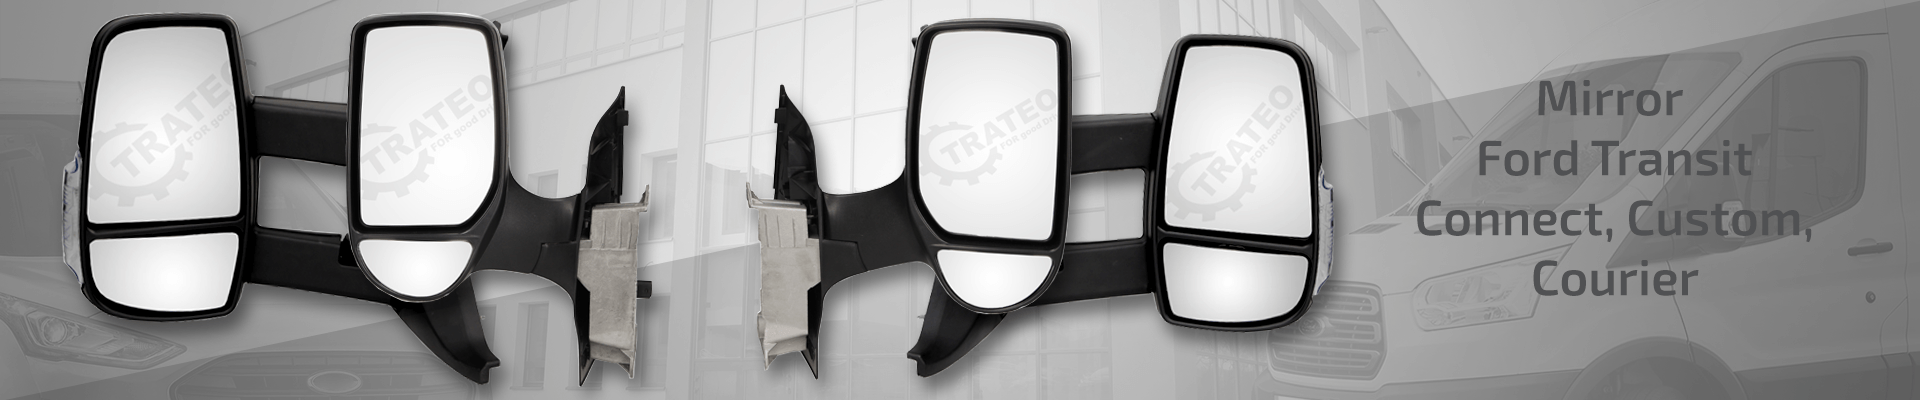 Ford Transit Front doors